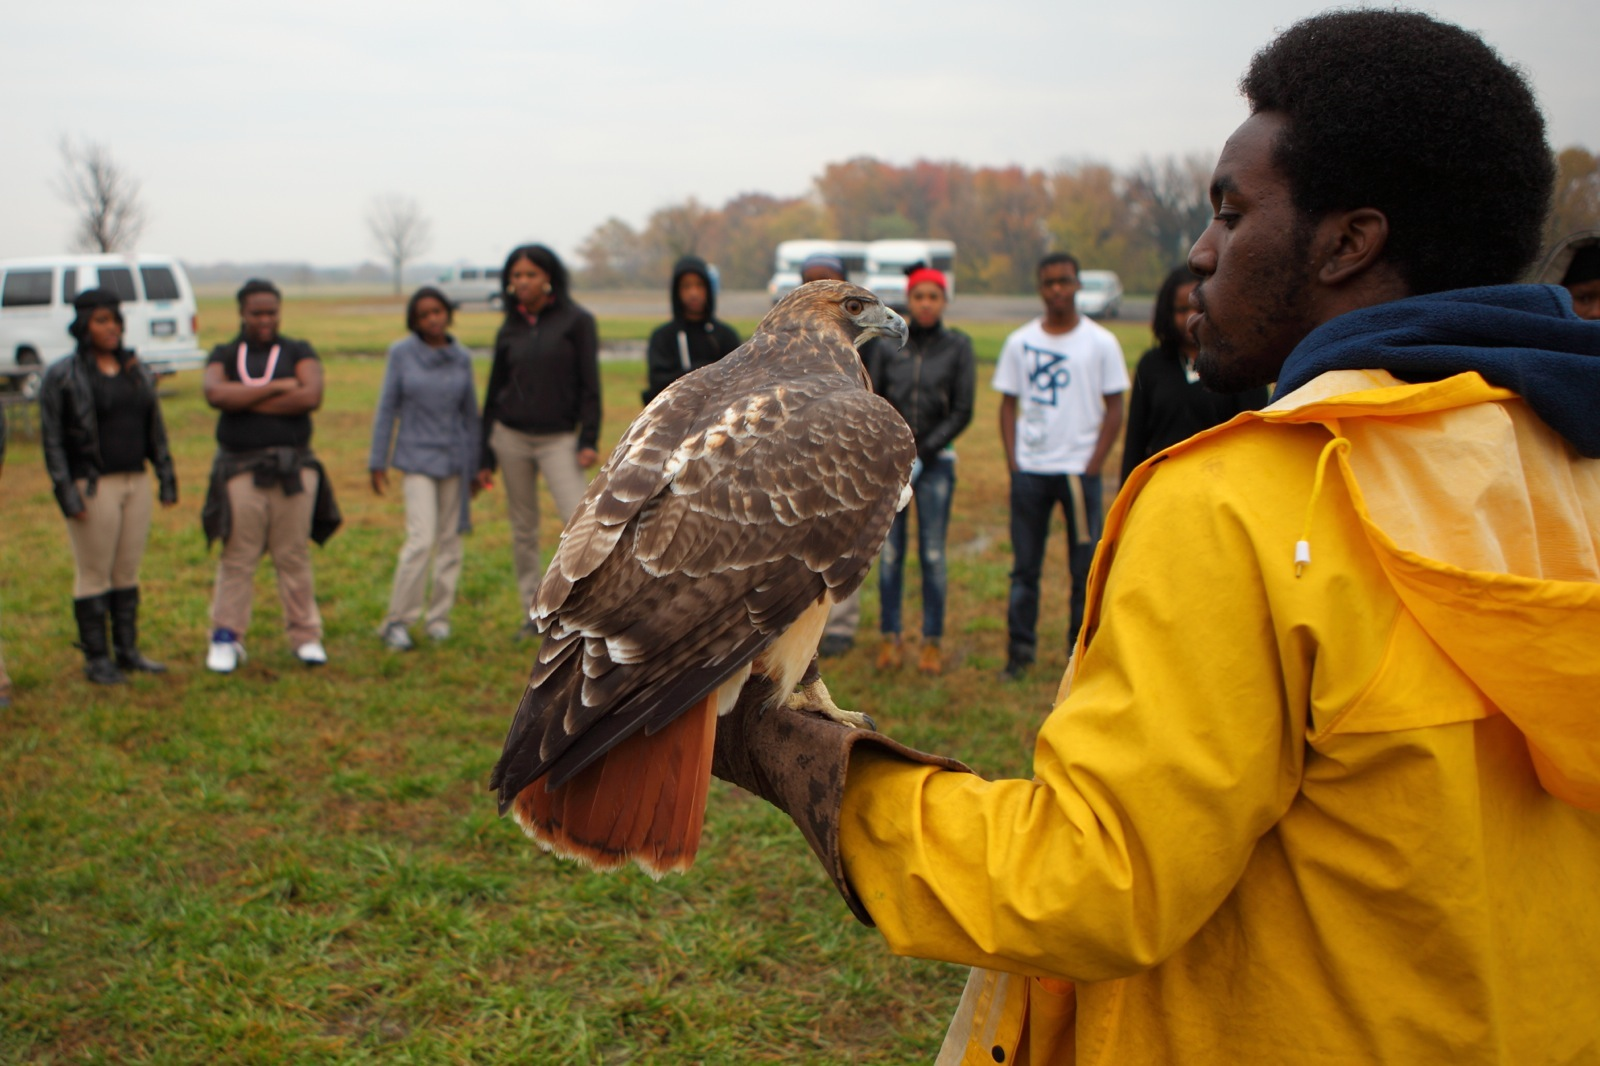 A birds of prey show in the  Anacostia National Park